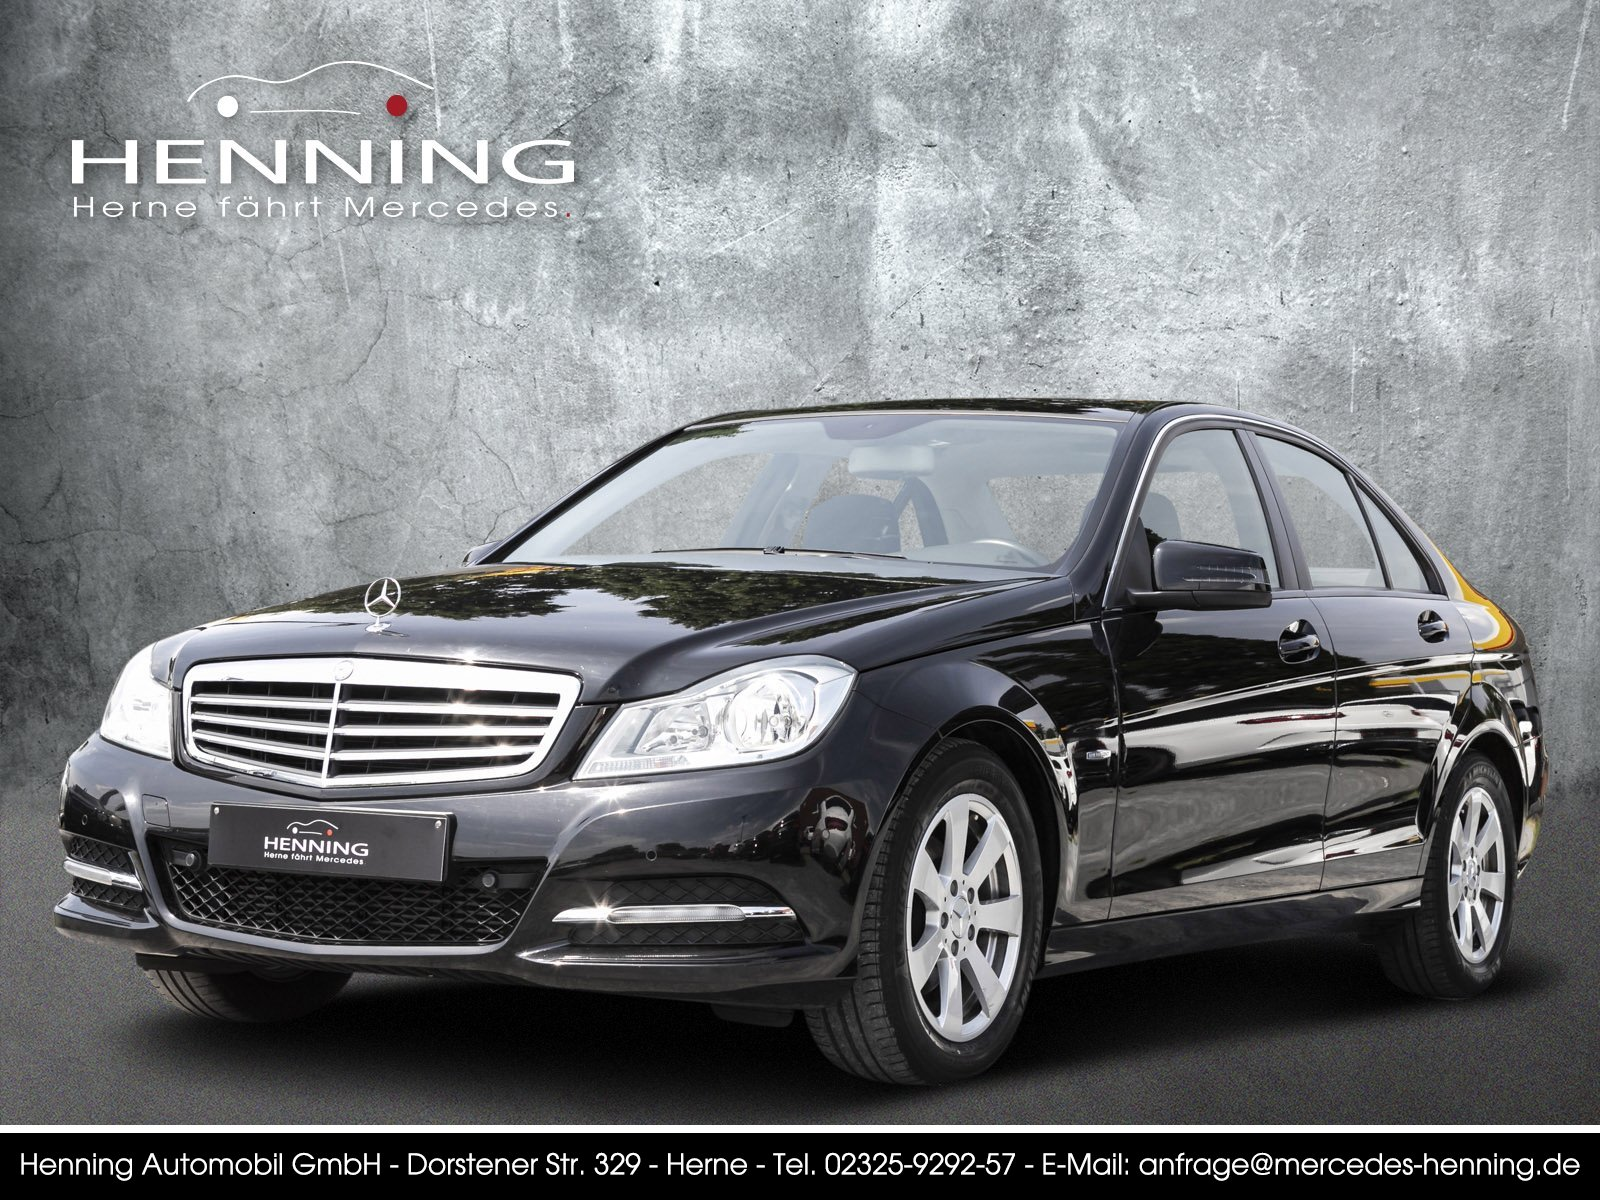 MERCEDES-BENZ C 180 BlueEFFICIENCY Limousine